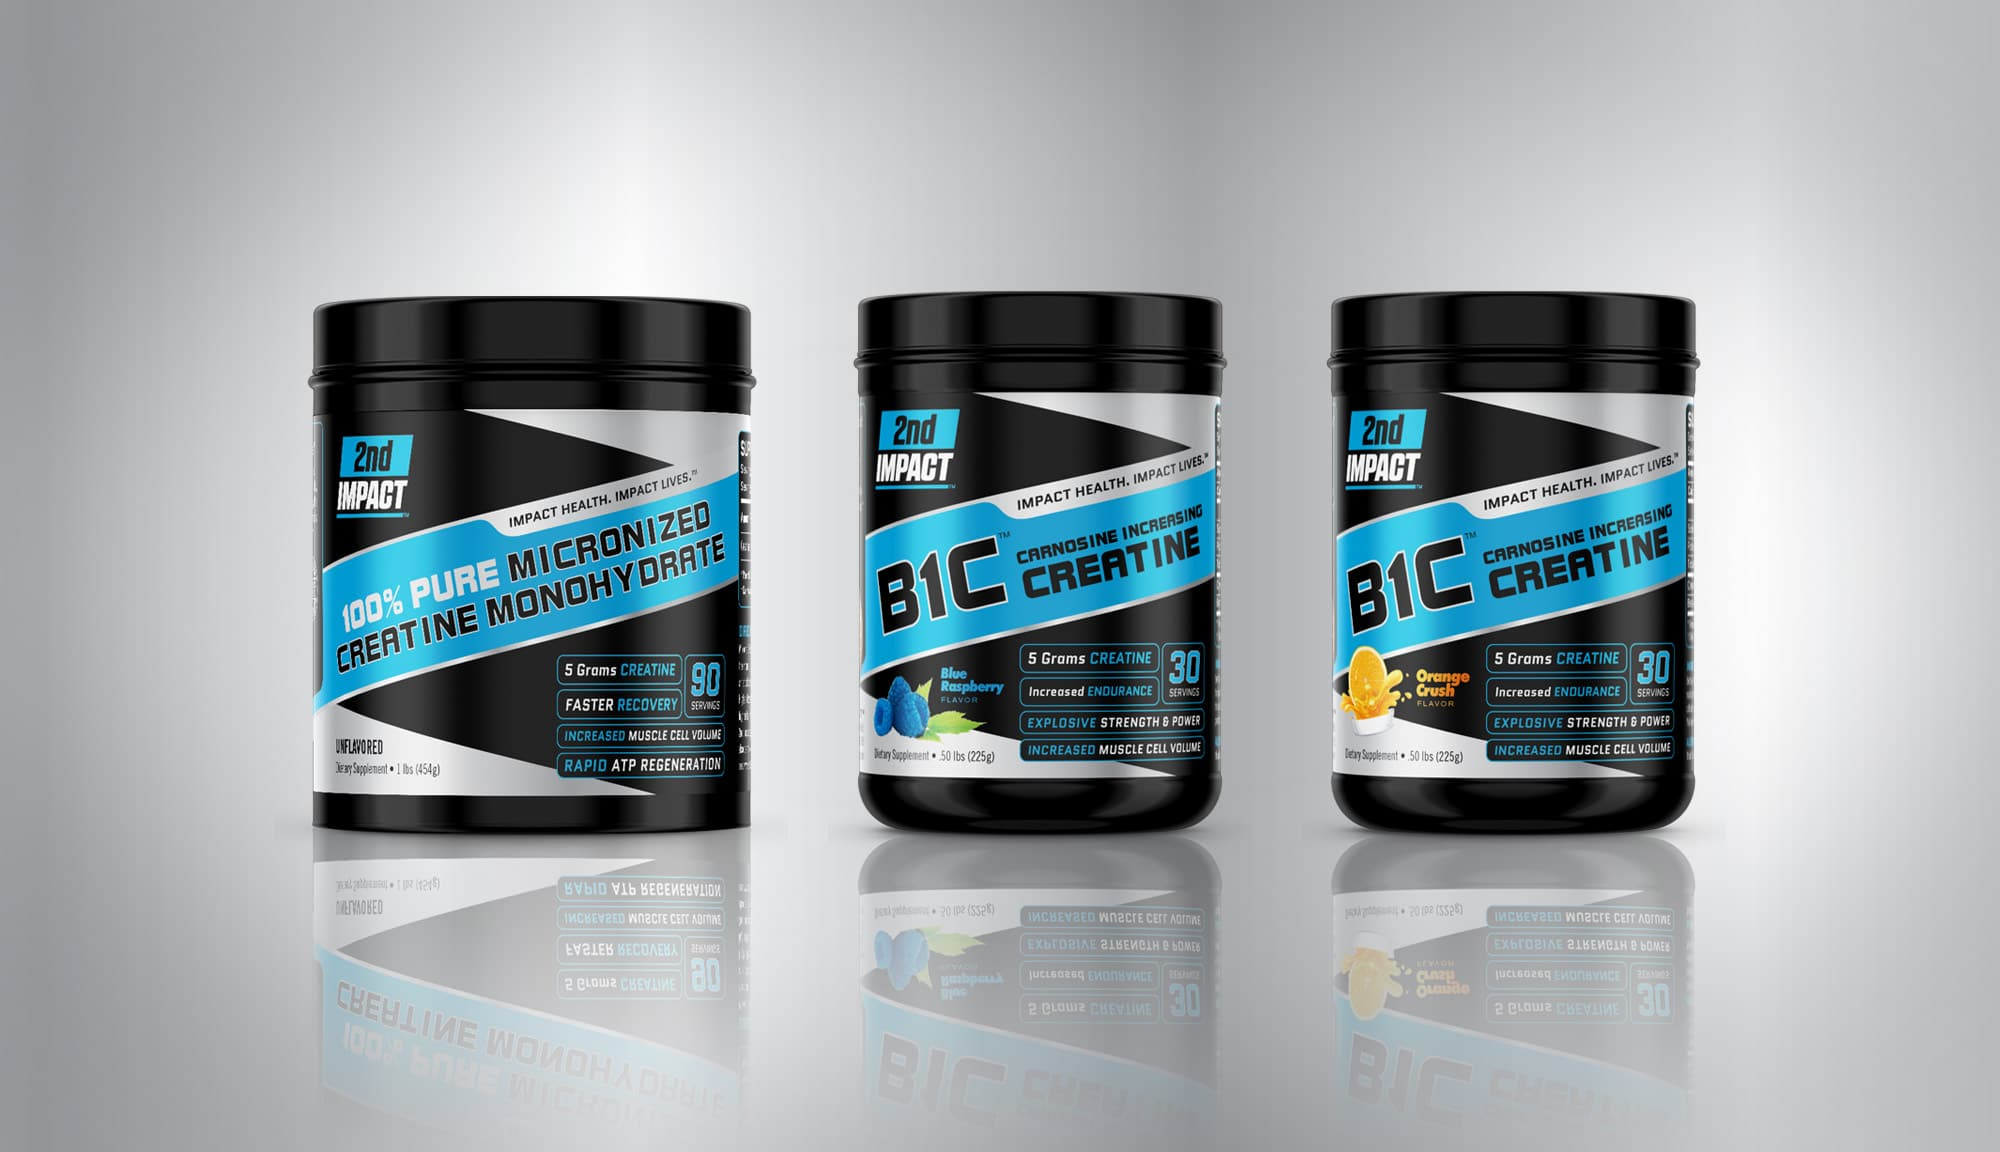 2nd Impact Creatine Packaging